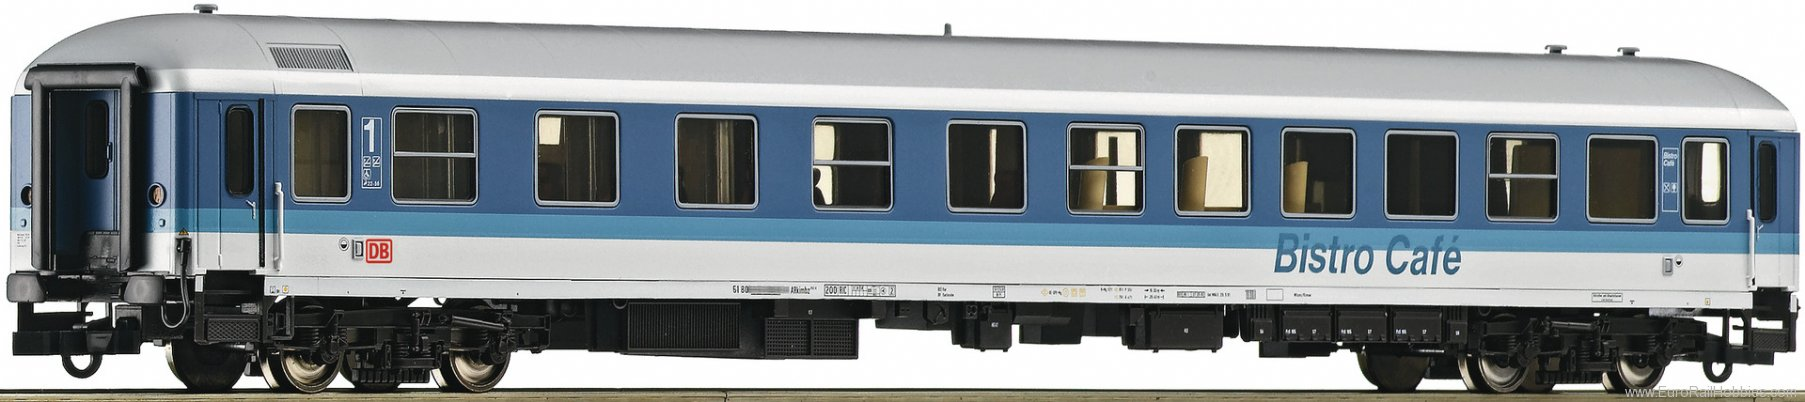 Roco 74304 1st class express train passenger coach with